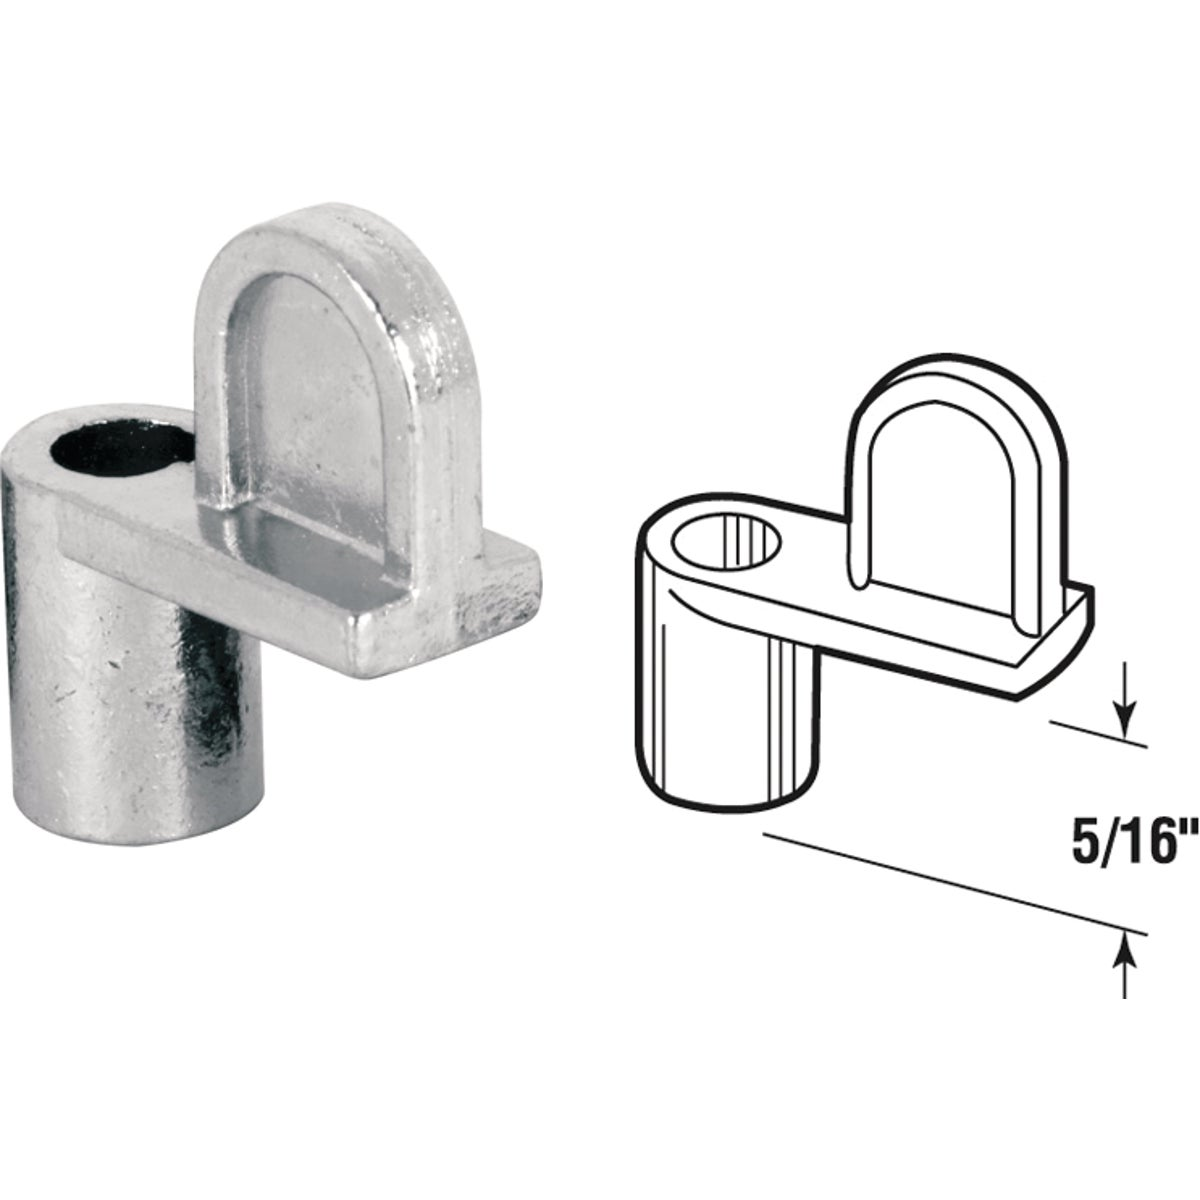 WINDOW SCREEN CLIPS - 182930-5 by Prime Line Products